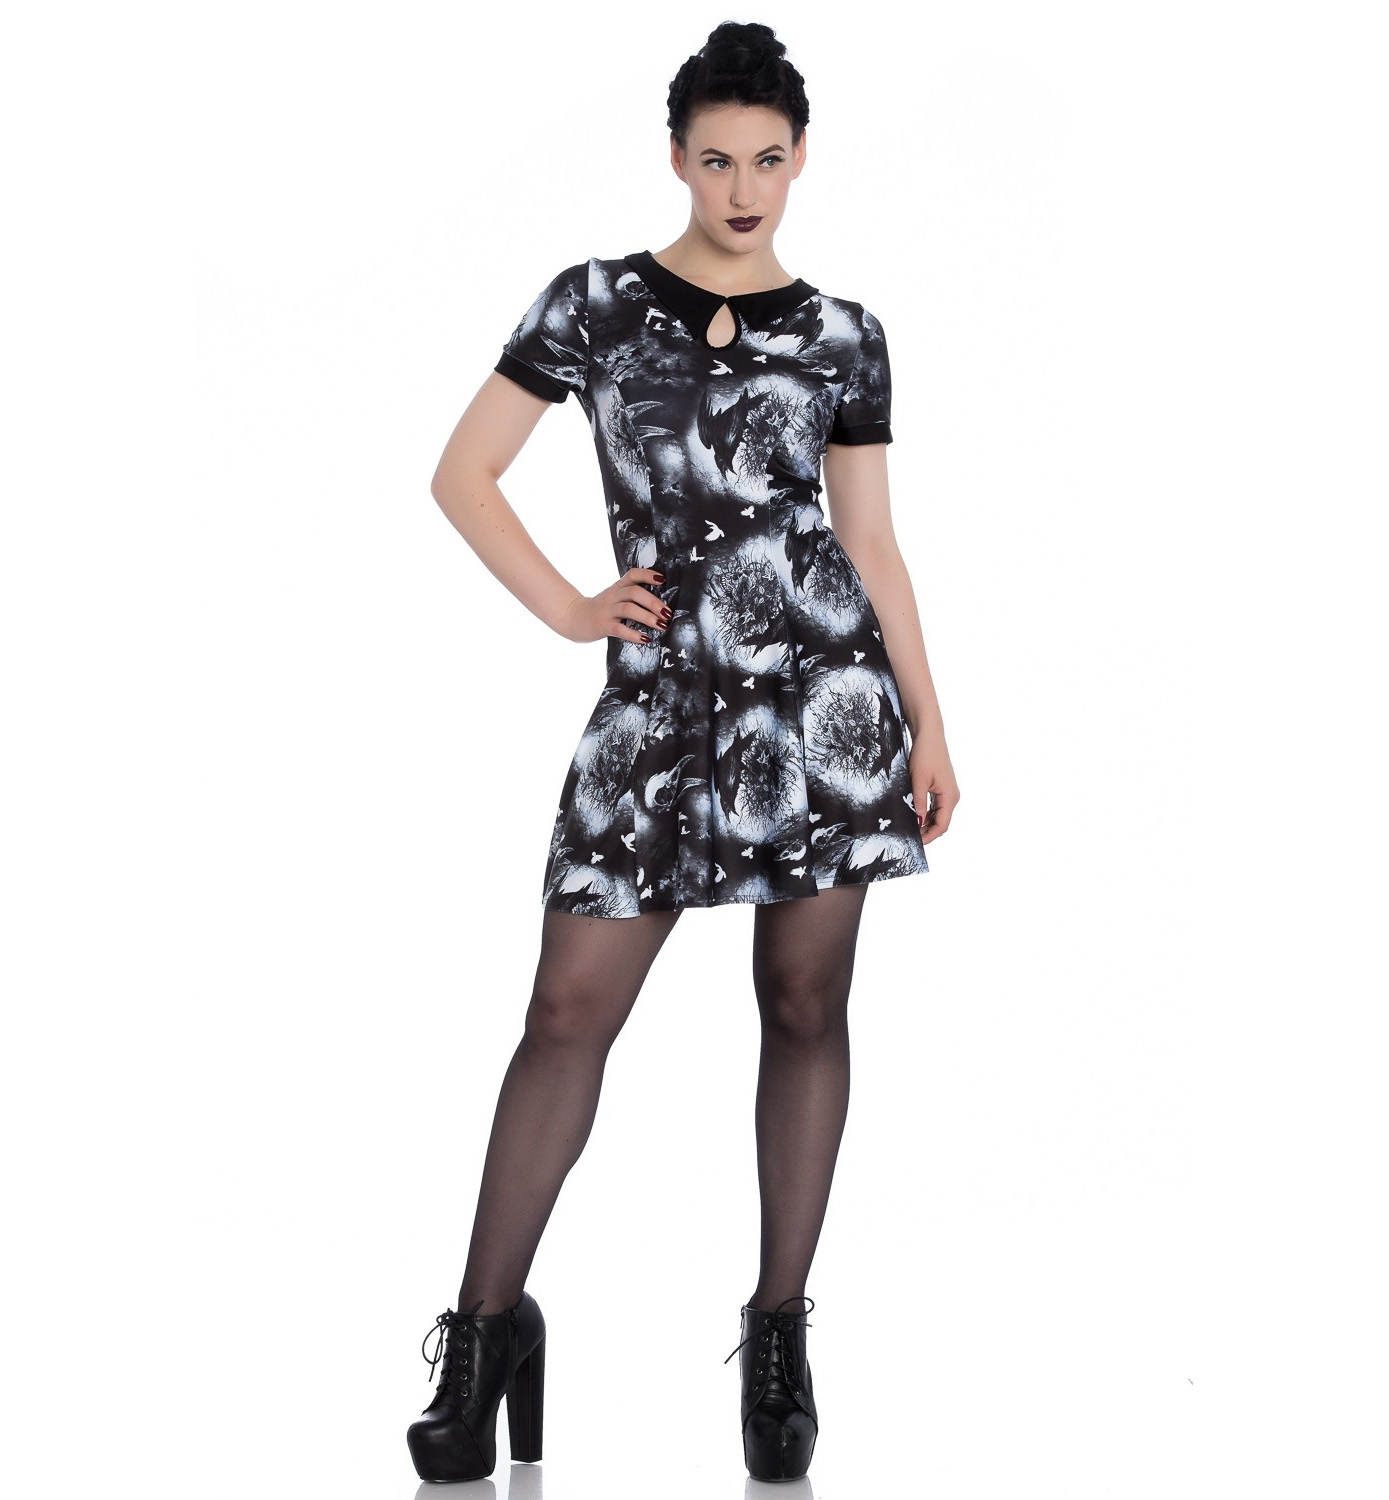 Hell-Bunny-Alternative-Goth-Punk-Black-Mini-Dress-CROWS-NEST-Witch-All-Sizes thumbnail 9